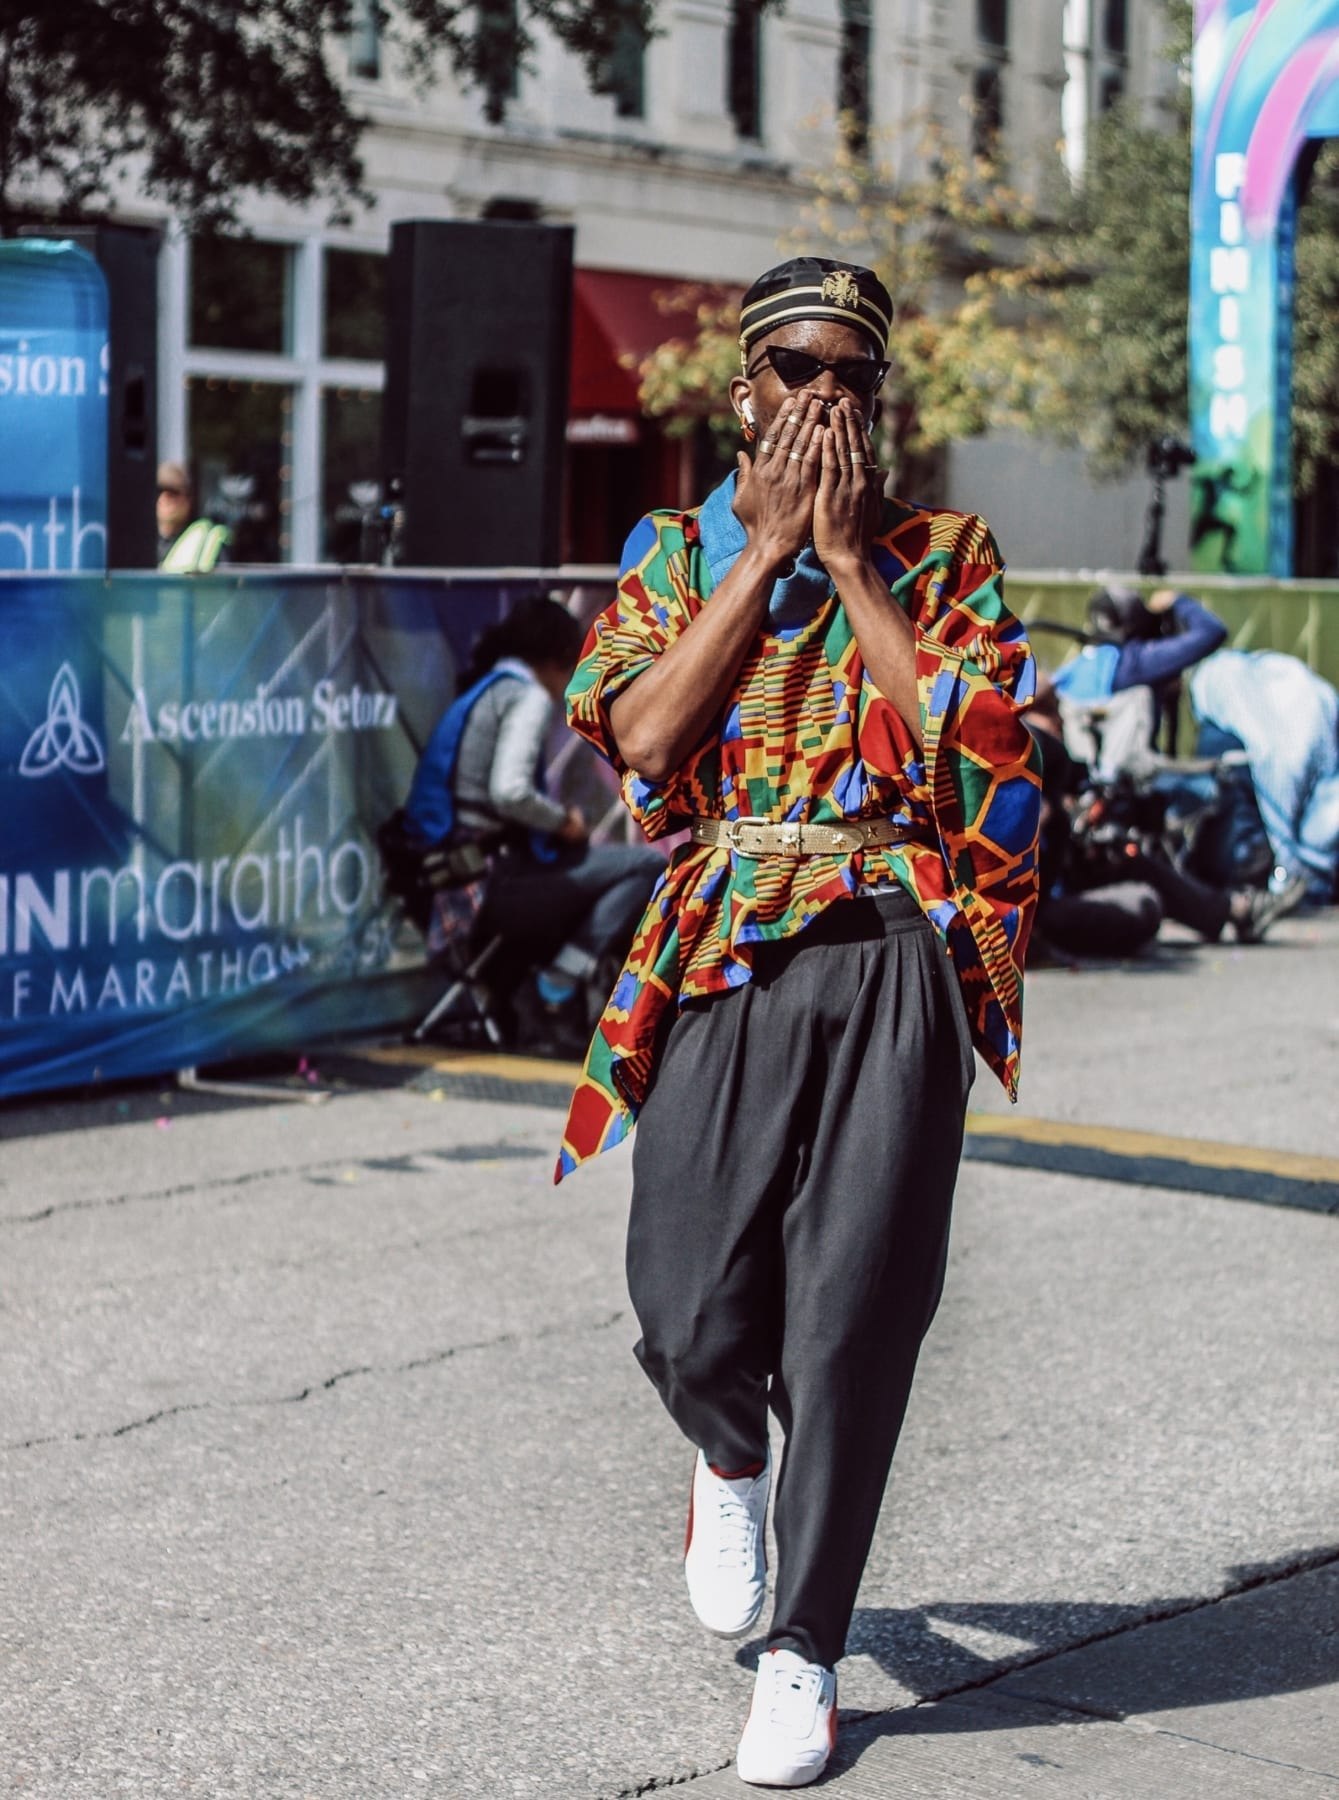 Drake Muyinza crosses the finish line in his final outfit during the Austin Marathon. He turned the 26.2-mile course into the World's Longest Fashion Runway!